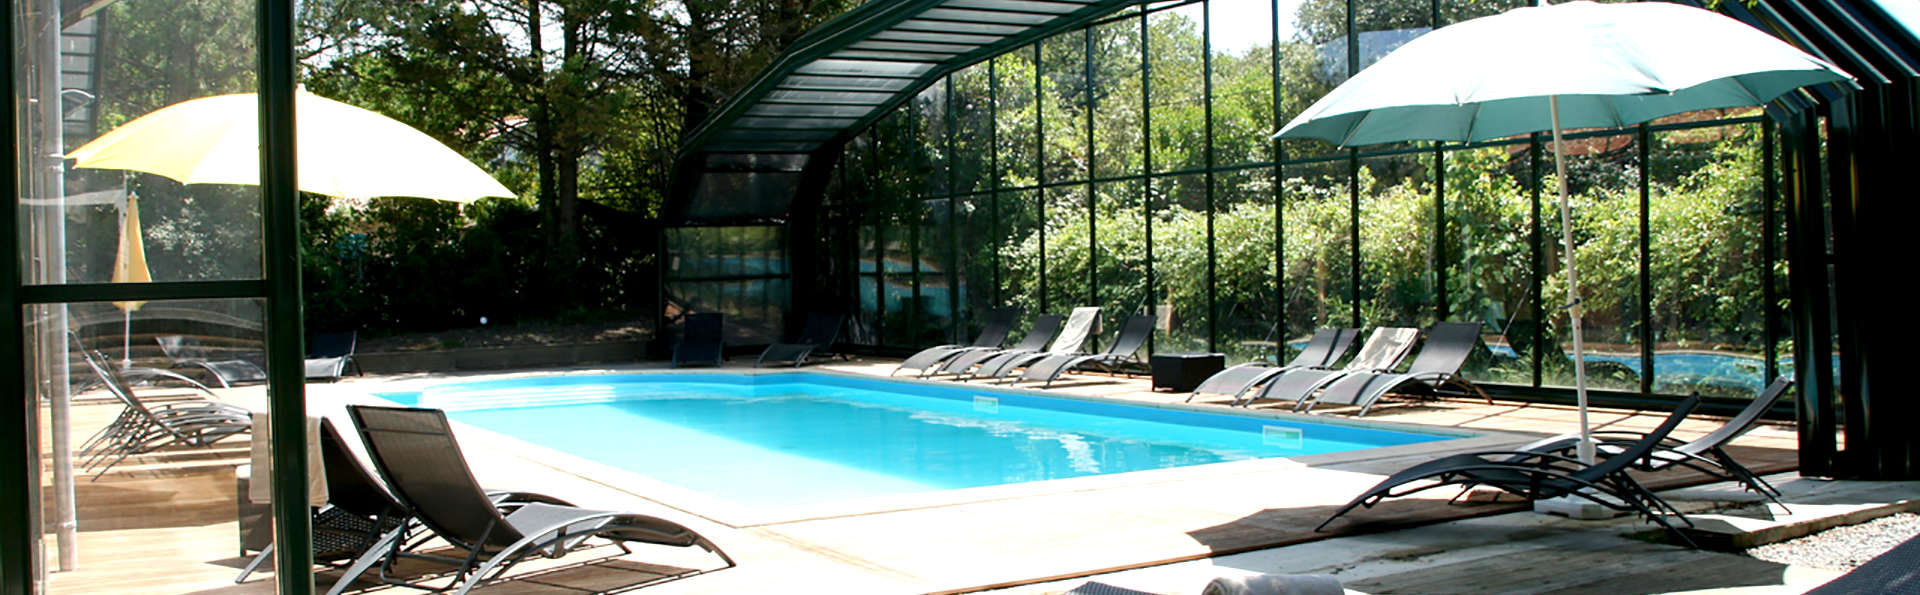 Hôtel Saint-Paul - Edit_Pool4.jpg